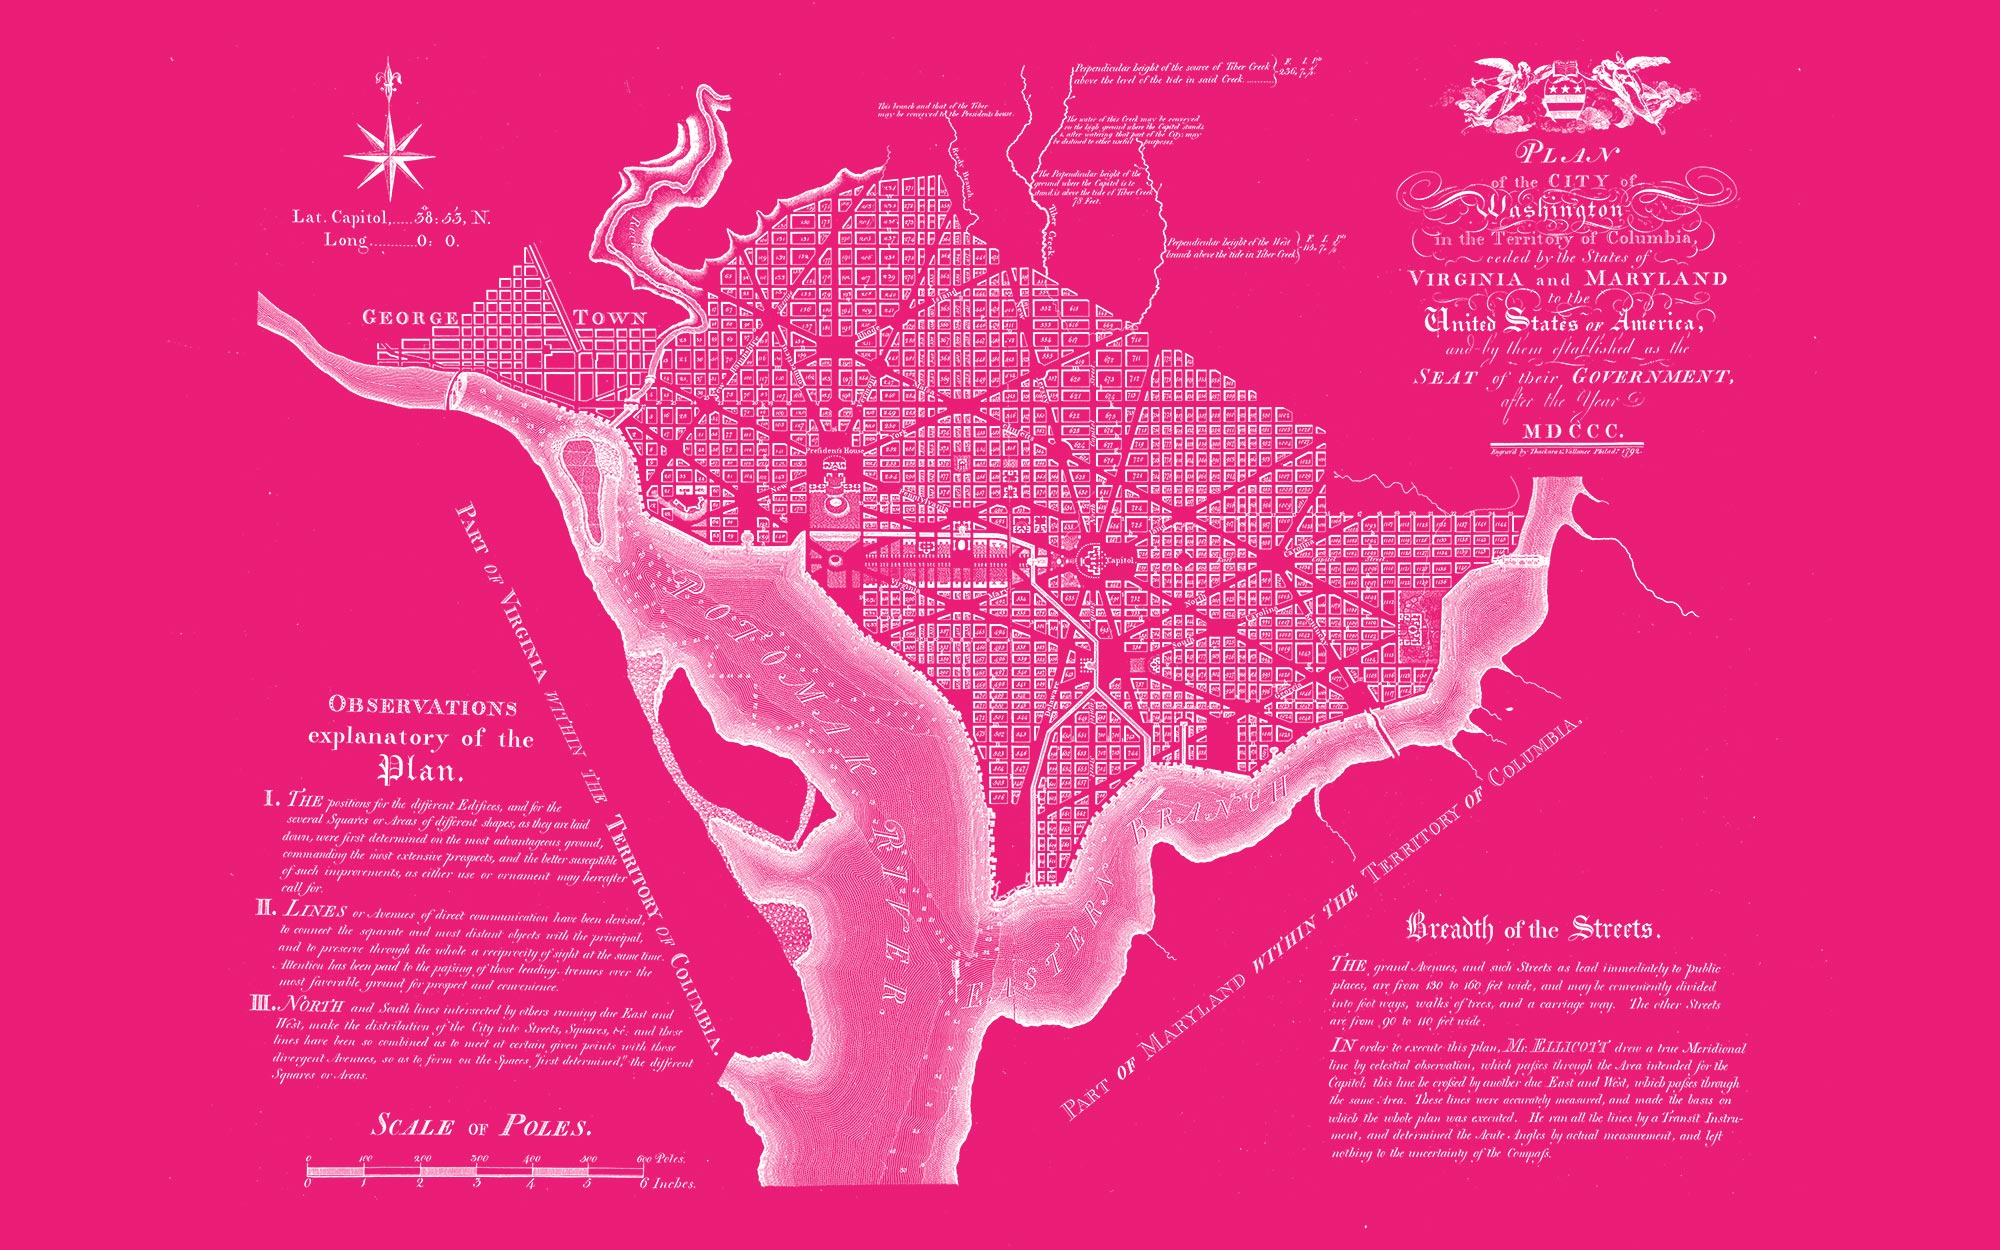 "Washington DC 1792 (pink canvas, 48"" x 30"")"